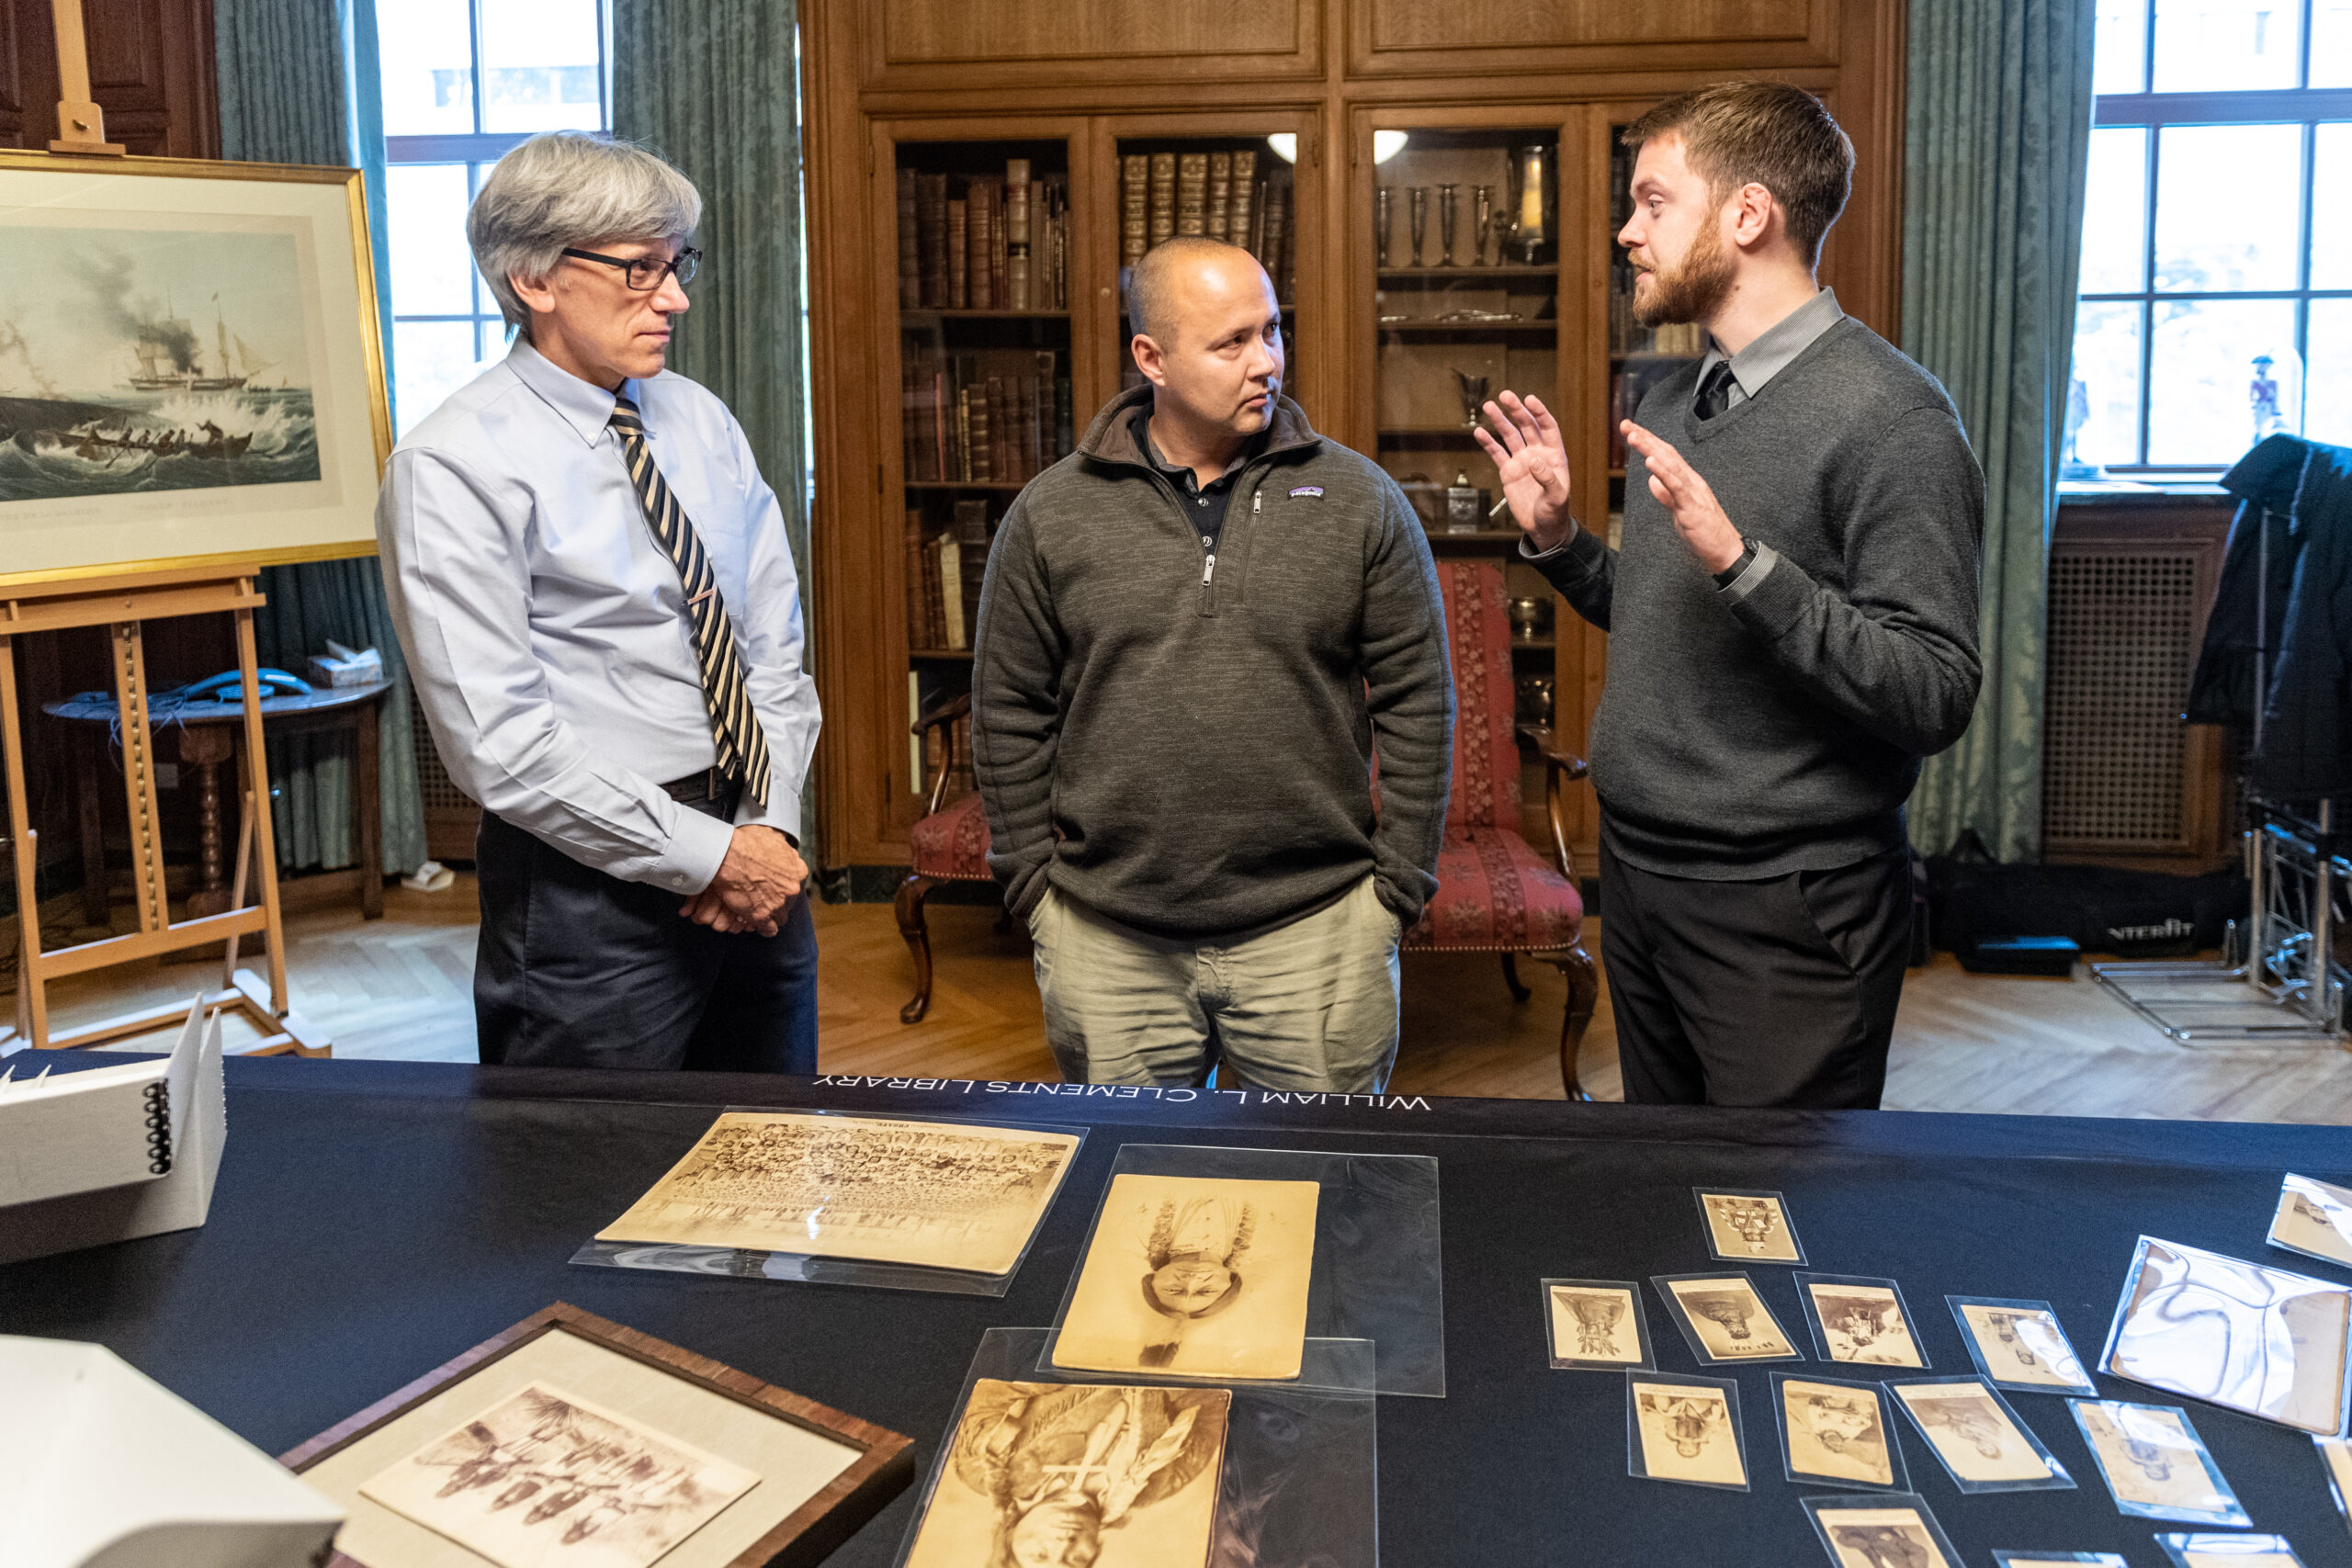 Left to right: Clayton Lewis, Eric Hemenway, and Jakob Dopp look at images from the Richard Pohrt Jr. Collection of Native American Photography at the William L. Clements Library. Image credit: Scott Soderberg, Michigan Photography